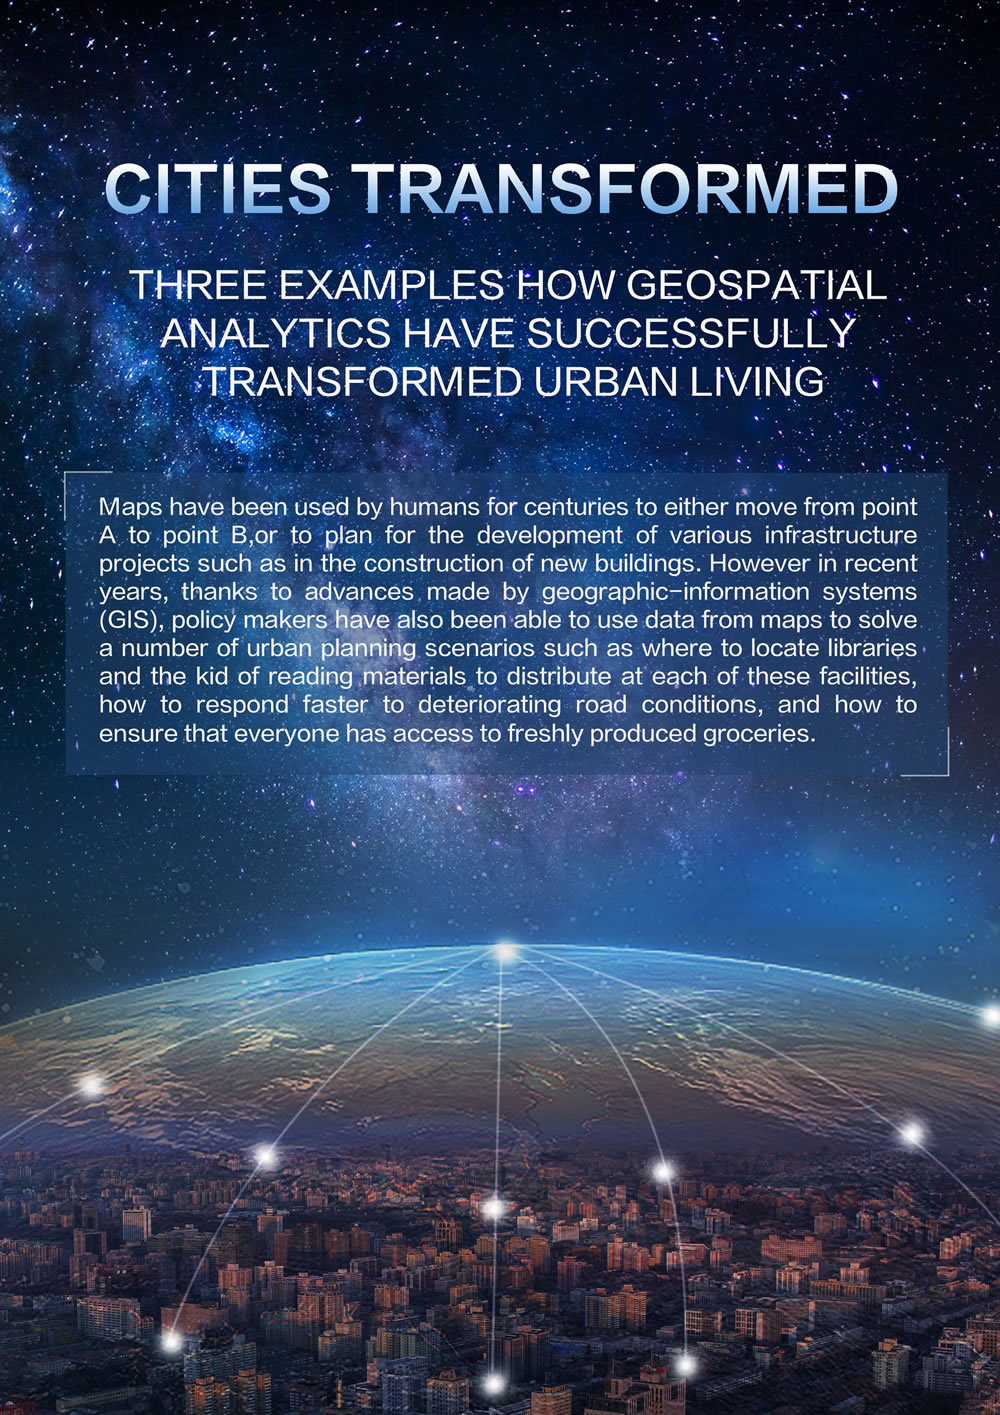 Cities transformed: three examples how geospatial analytics have successfully transformed urban living